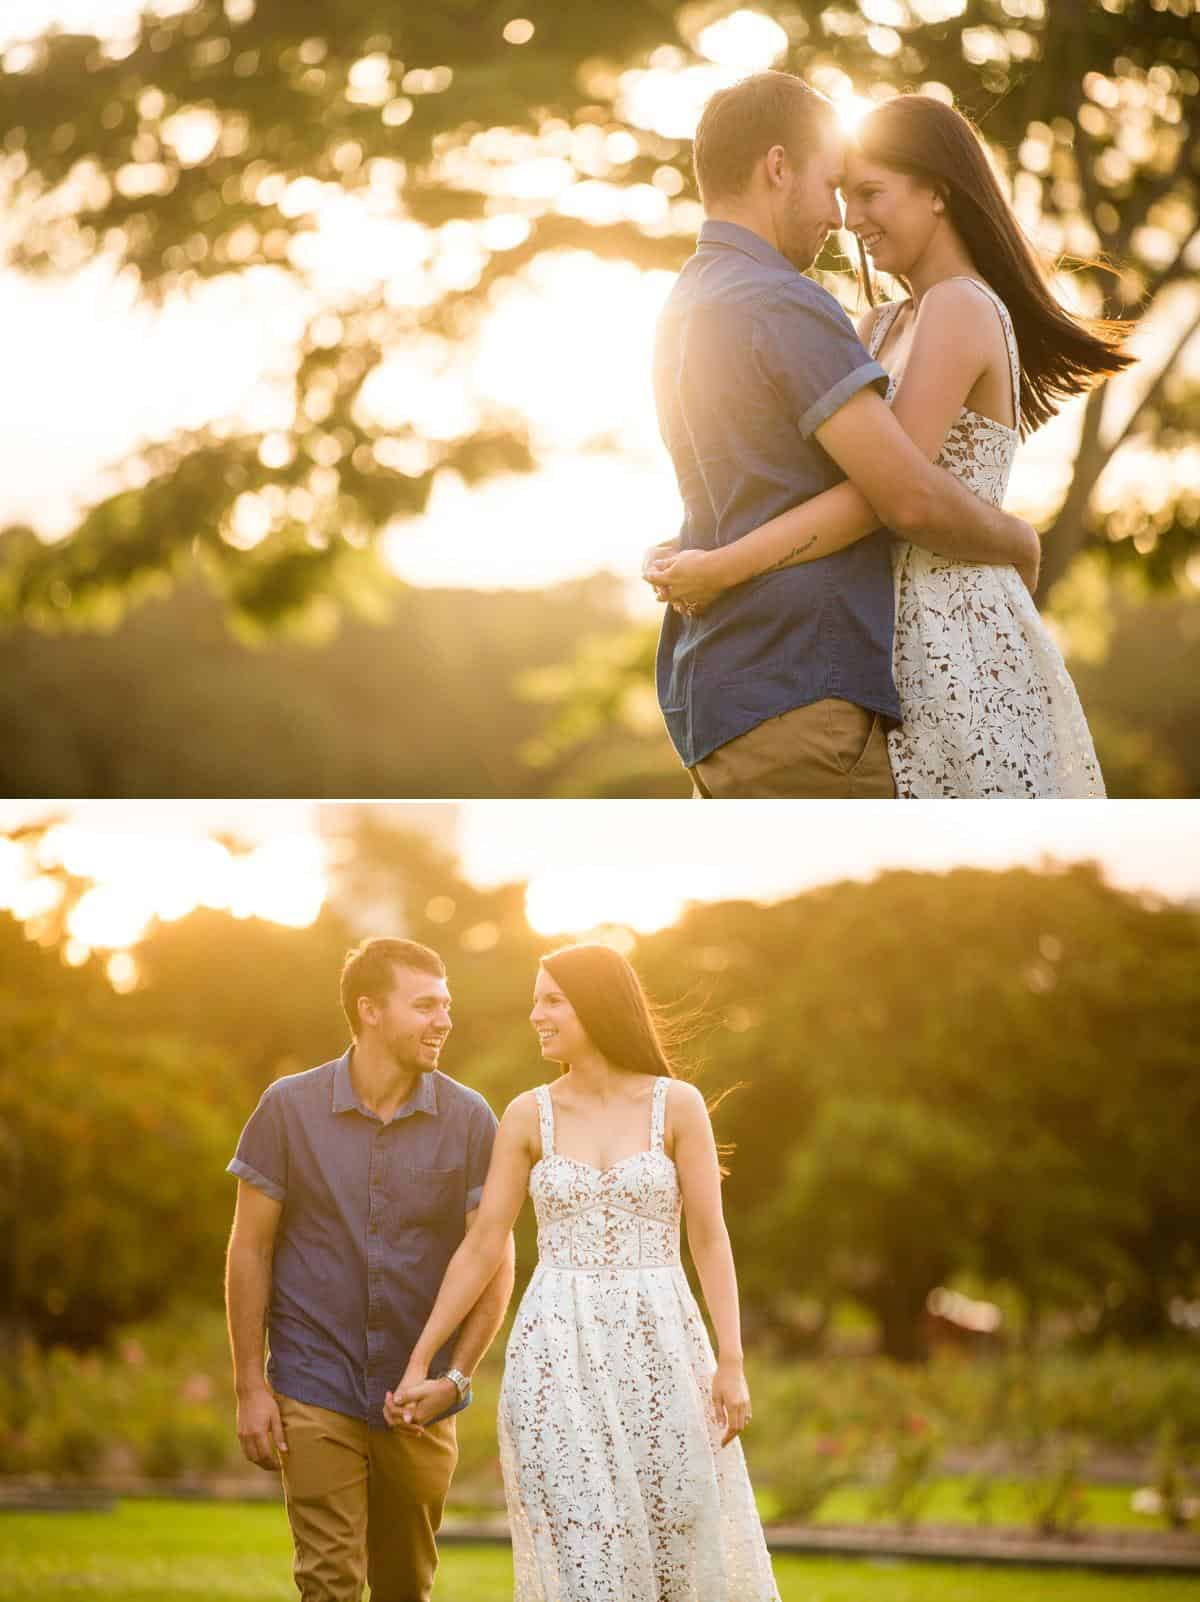 New Farm Park engagement photography www.benandhopeweddings.com.au